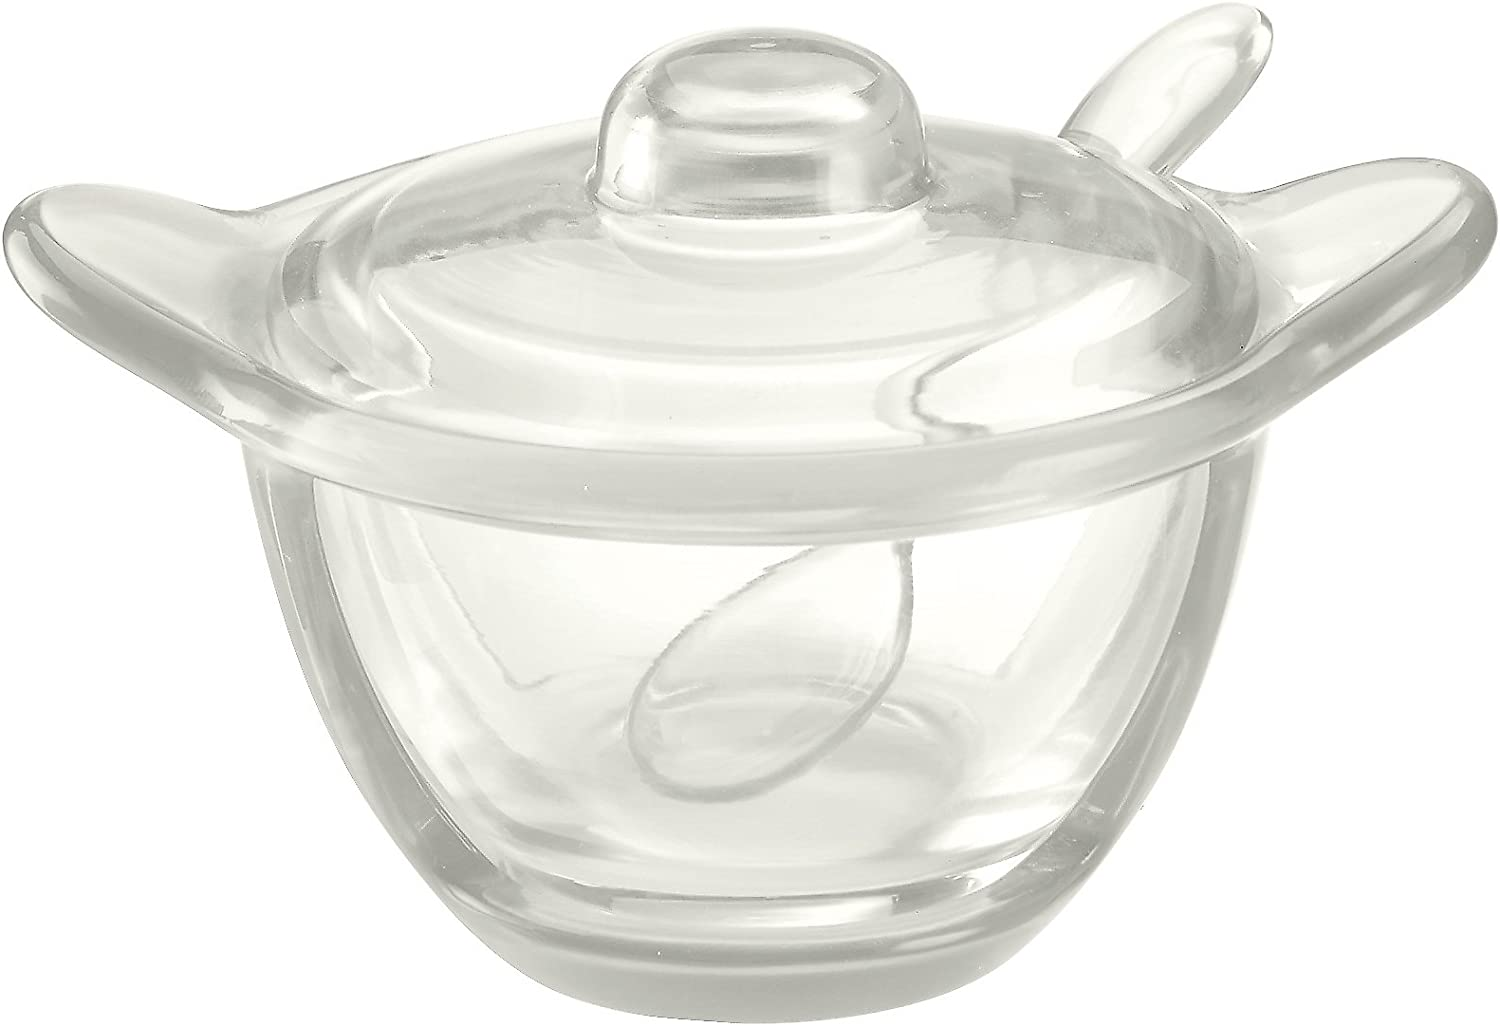 Guzzini Transparent Sugar Parmesan Jam Spoon Server We OFFer Sales results No. 1 at cheap prices with